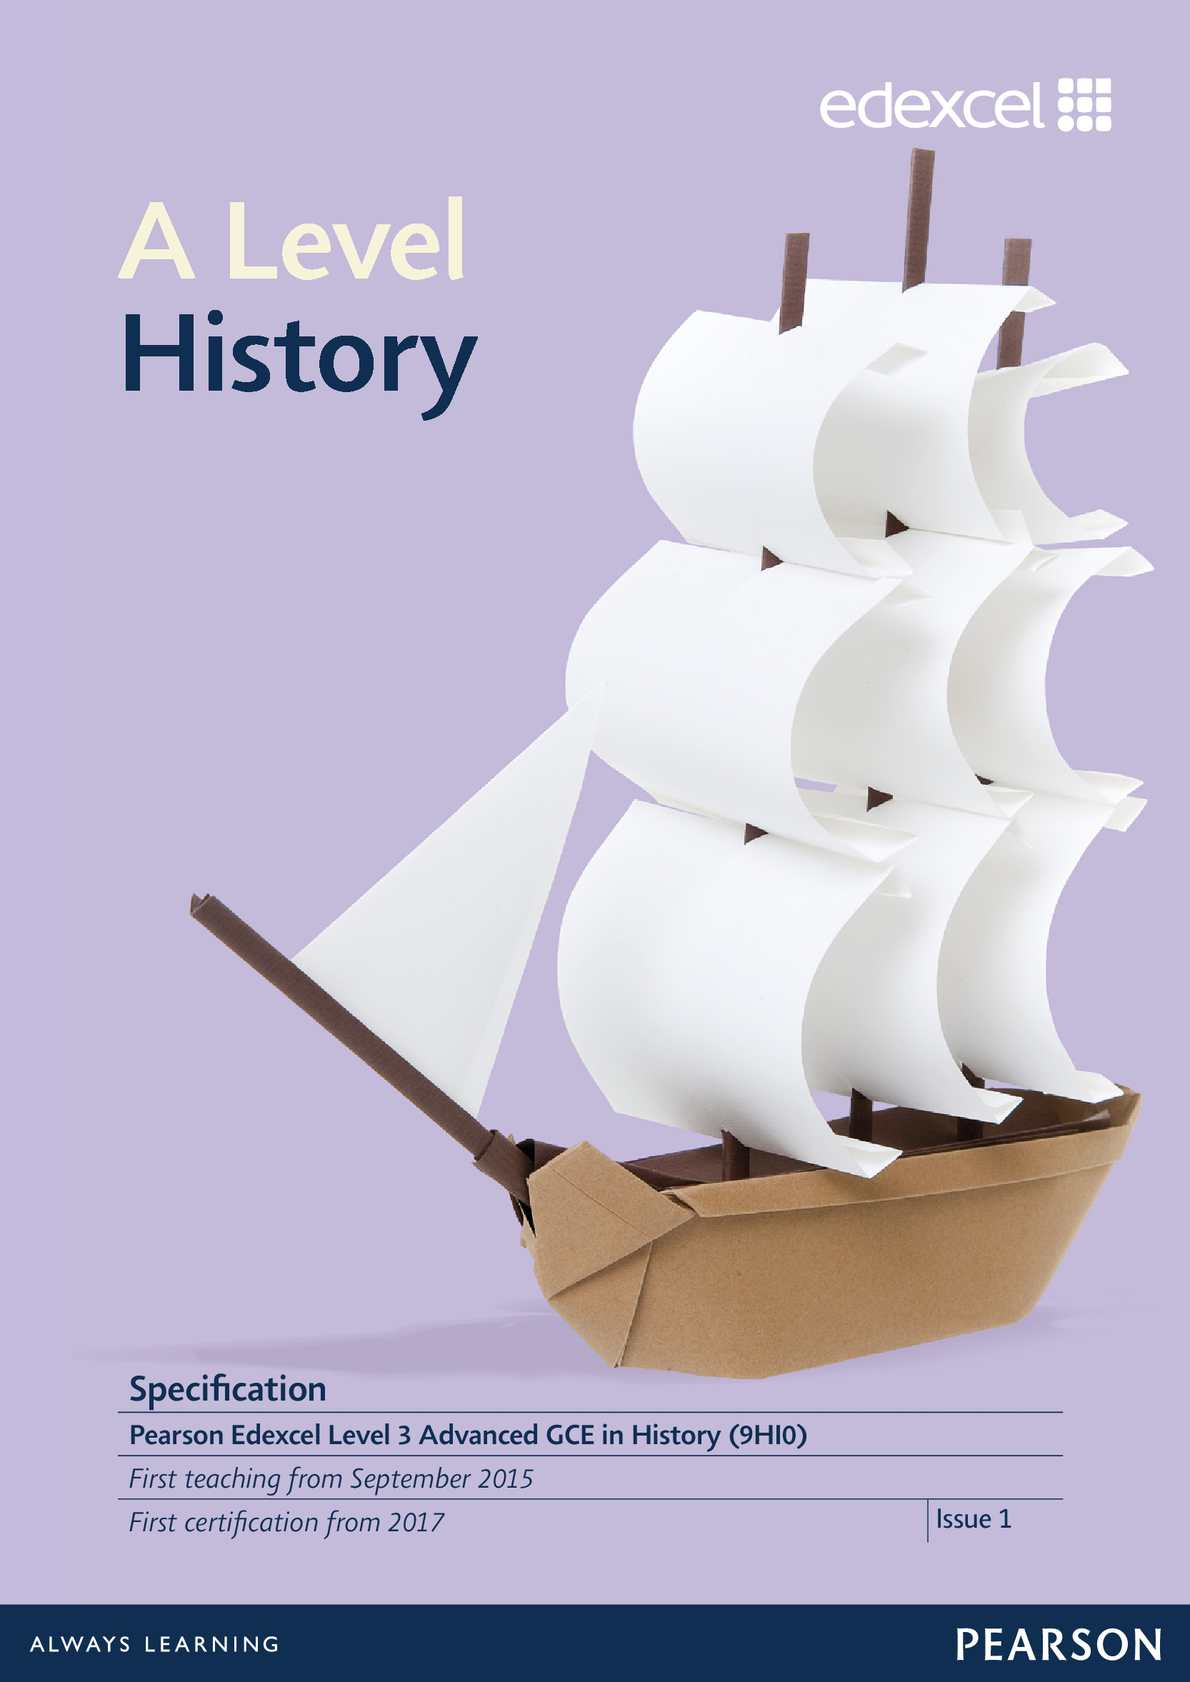 Teaching Edexcel A History: Paper 3 and Coursework